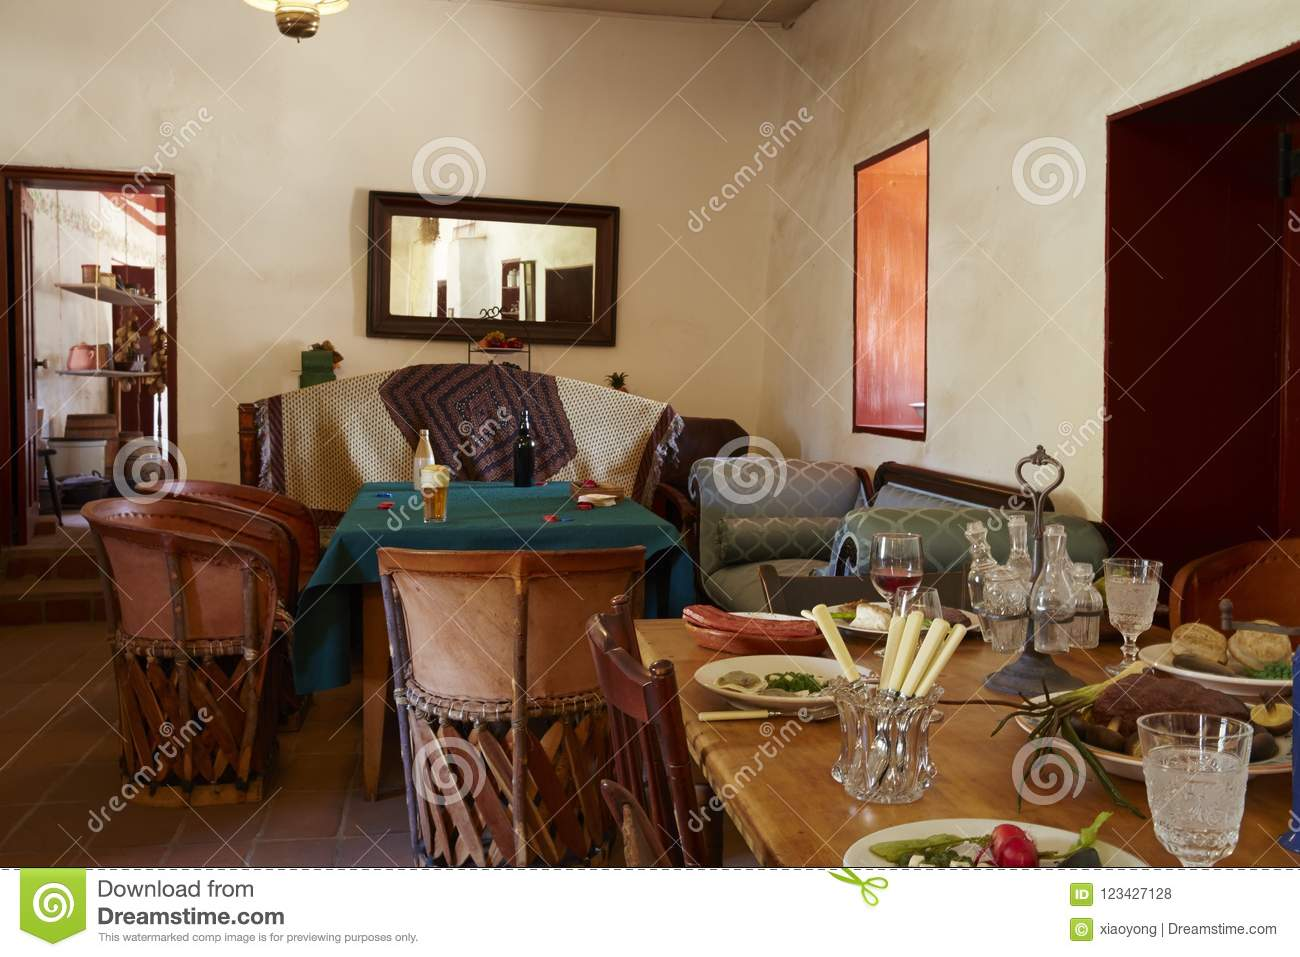 Interior Of Traditional Spanish Or Mexican Casa, San Diego